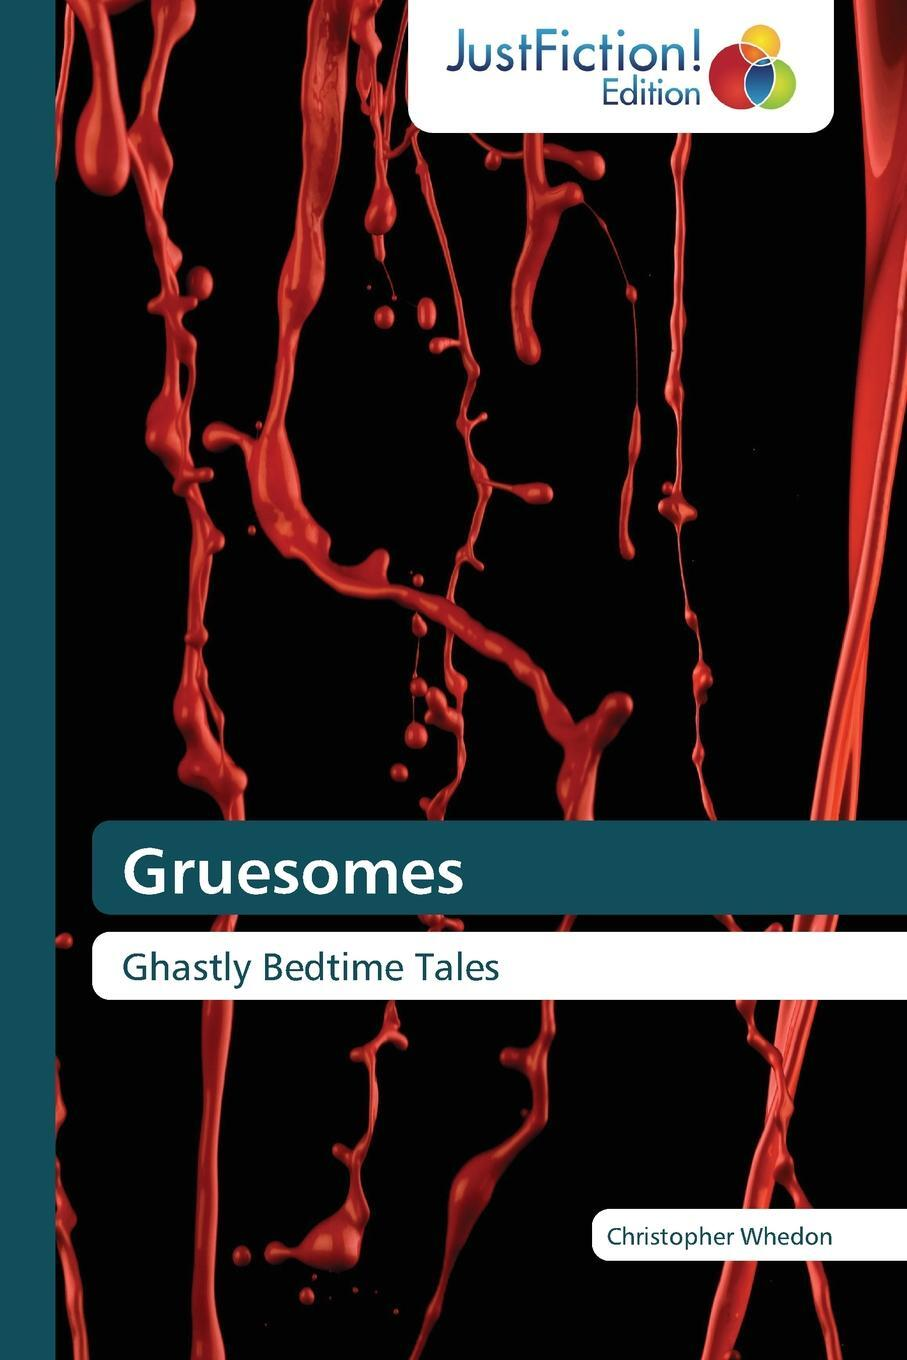 Whedon Christopher. Gruesomes